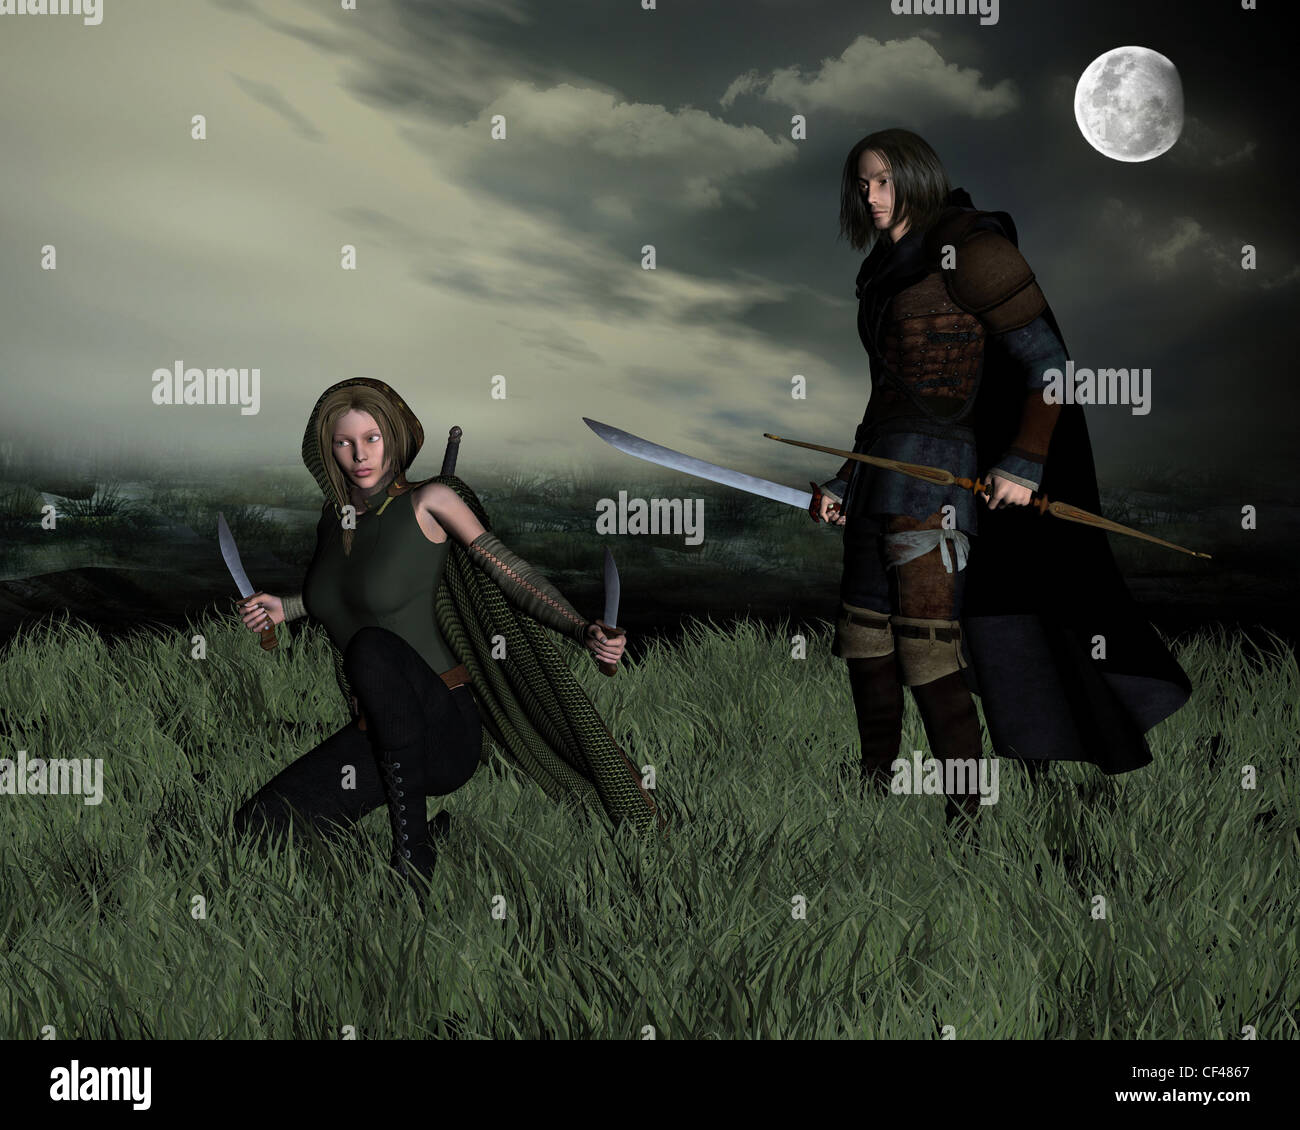 Hunters in the Moonlight - Stock Image